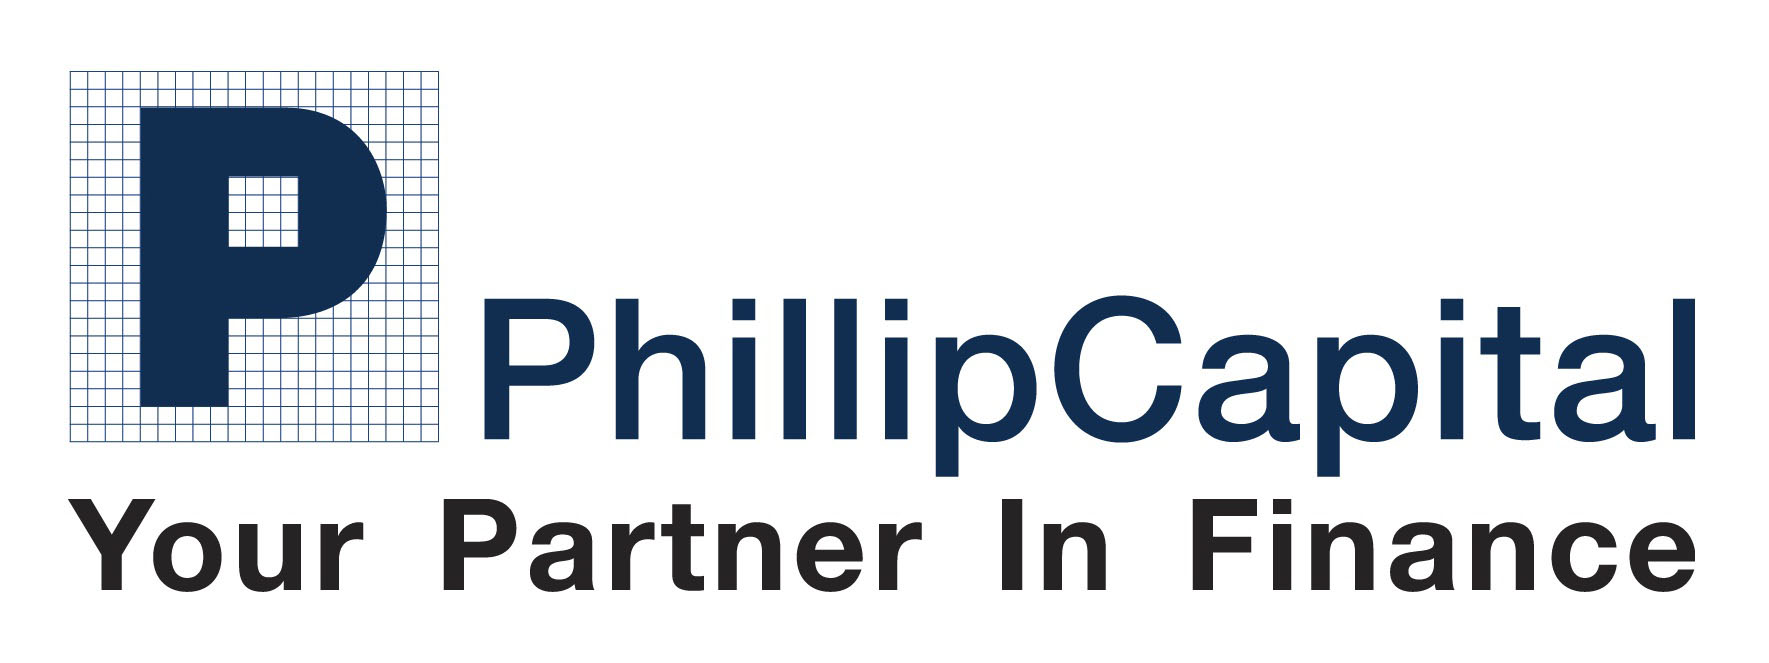 Phillip-Capital-Australia.jpg